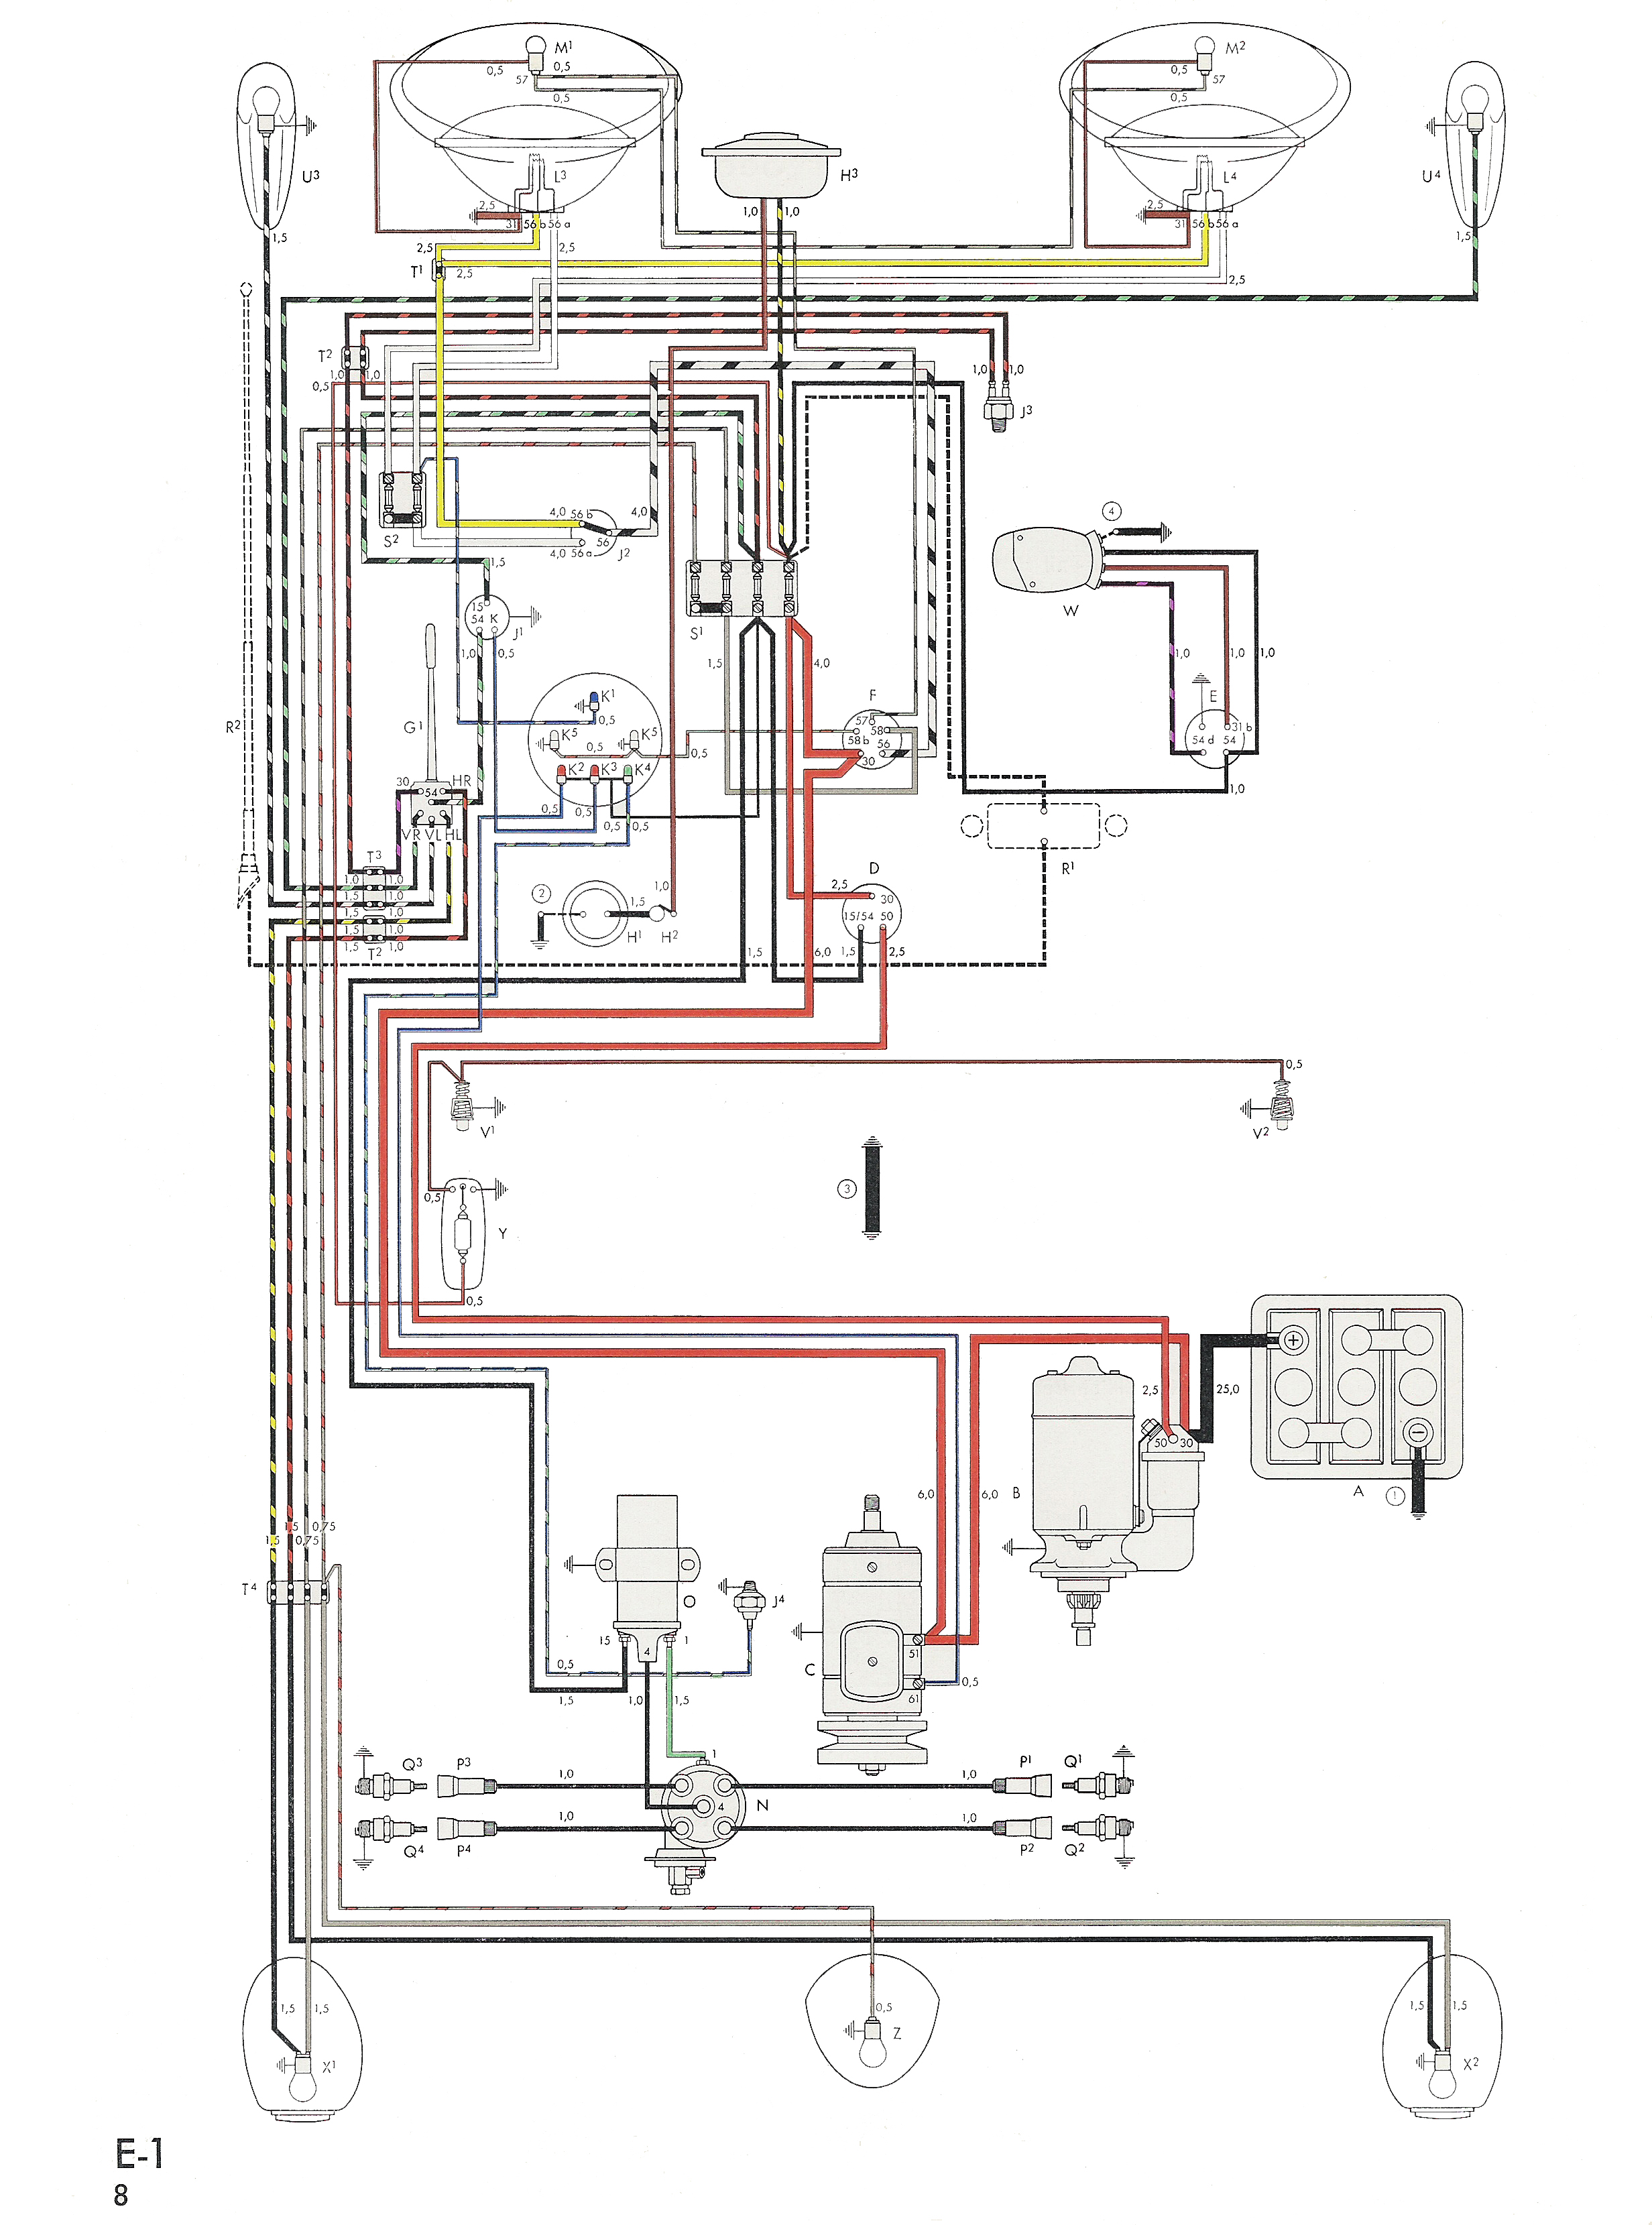 Type 1 Wiring Diagrams 2015 Sonata Diagram 1958 Usa